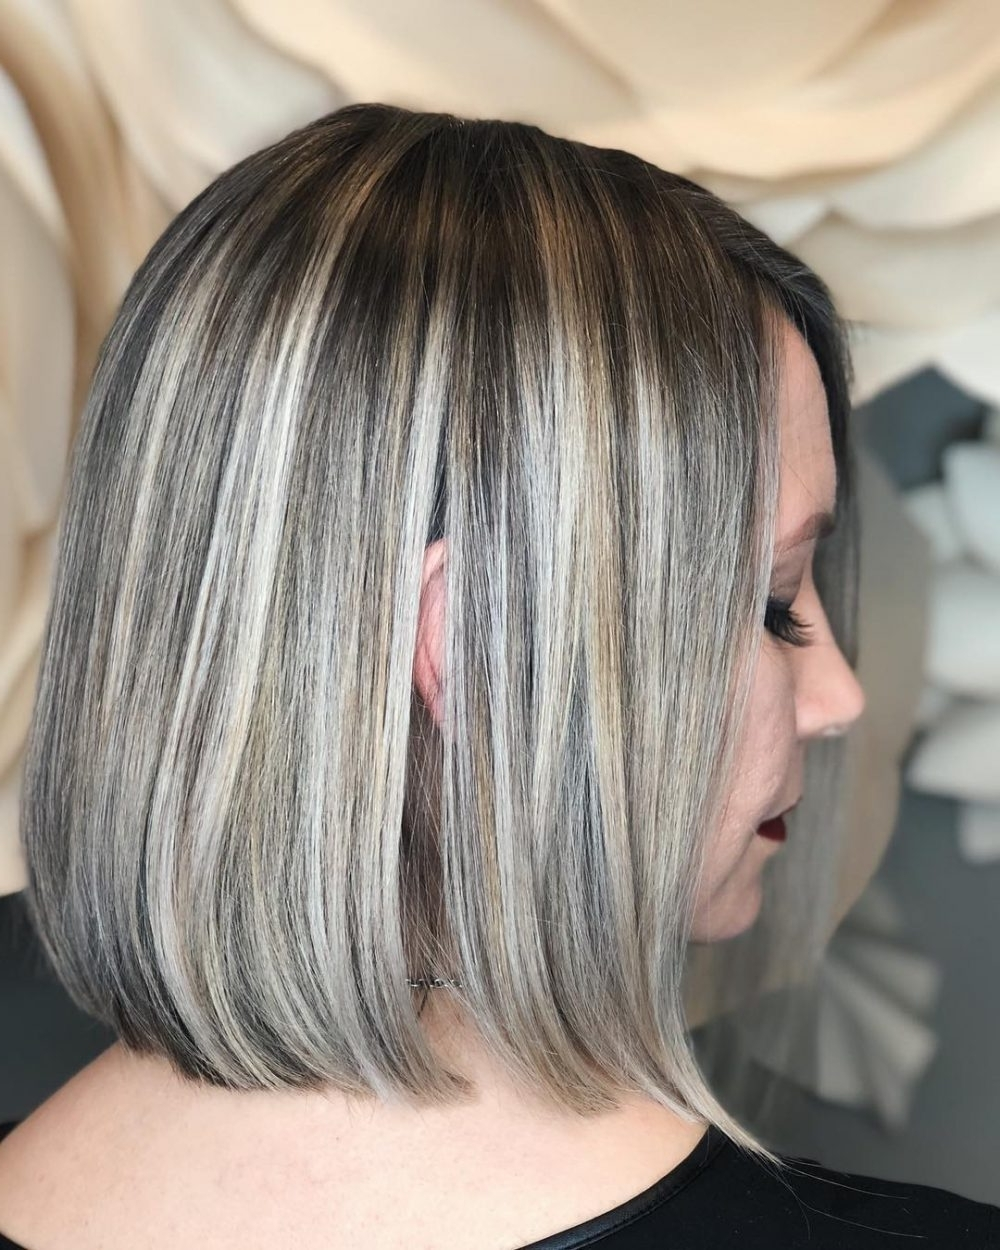 Most Recent Blonde Hairstyles With Platinum Babylights Intended For 24 Greatest Brown Hair With Blonde Highlights For  (View 11 of 20)